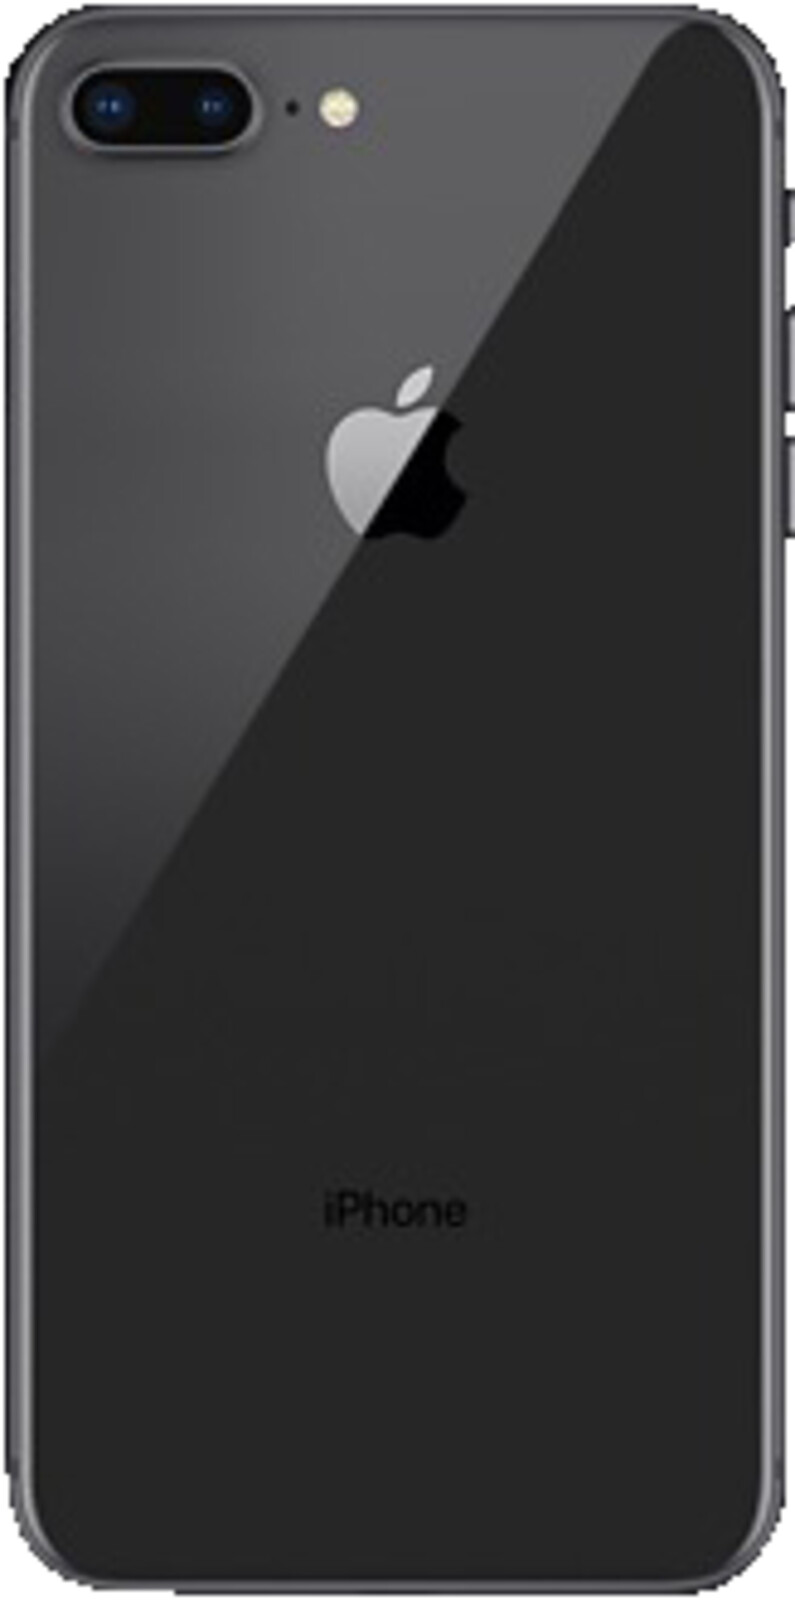 apple iphone 8 plus smartphone 256 gb space grey ebay. Black Bedroom Furniture Sets. Home Design Ideas